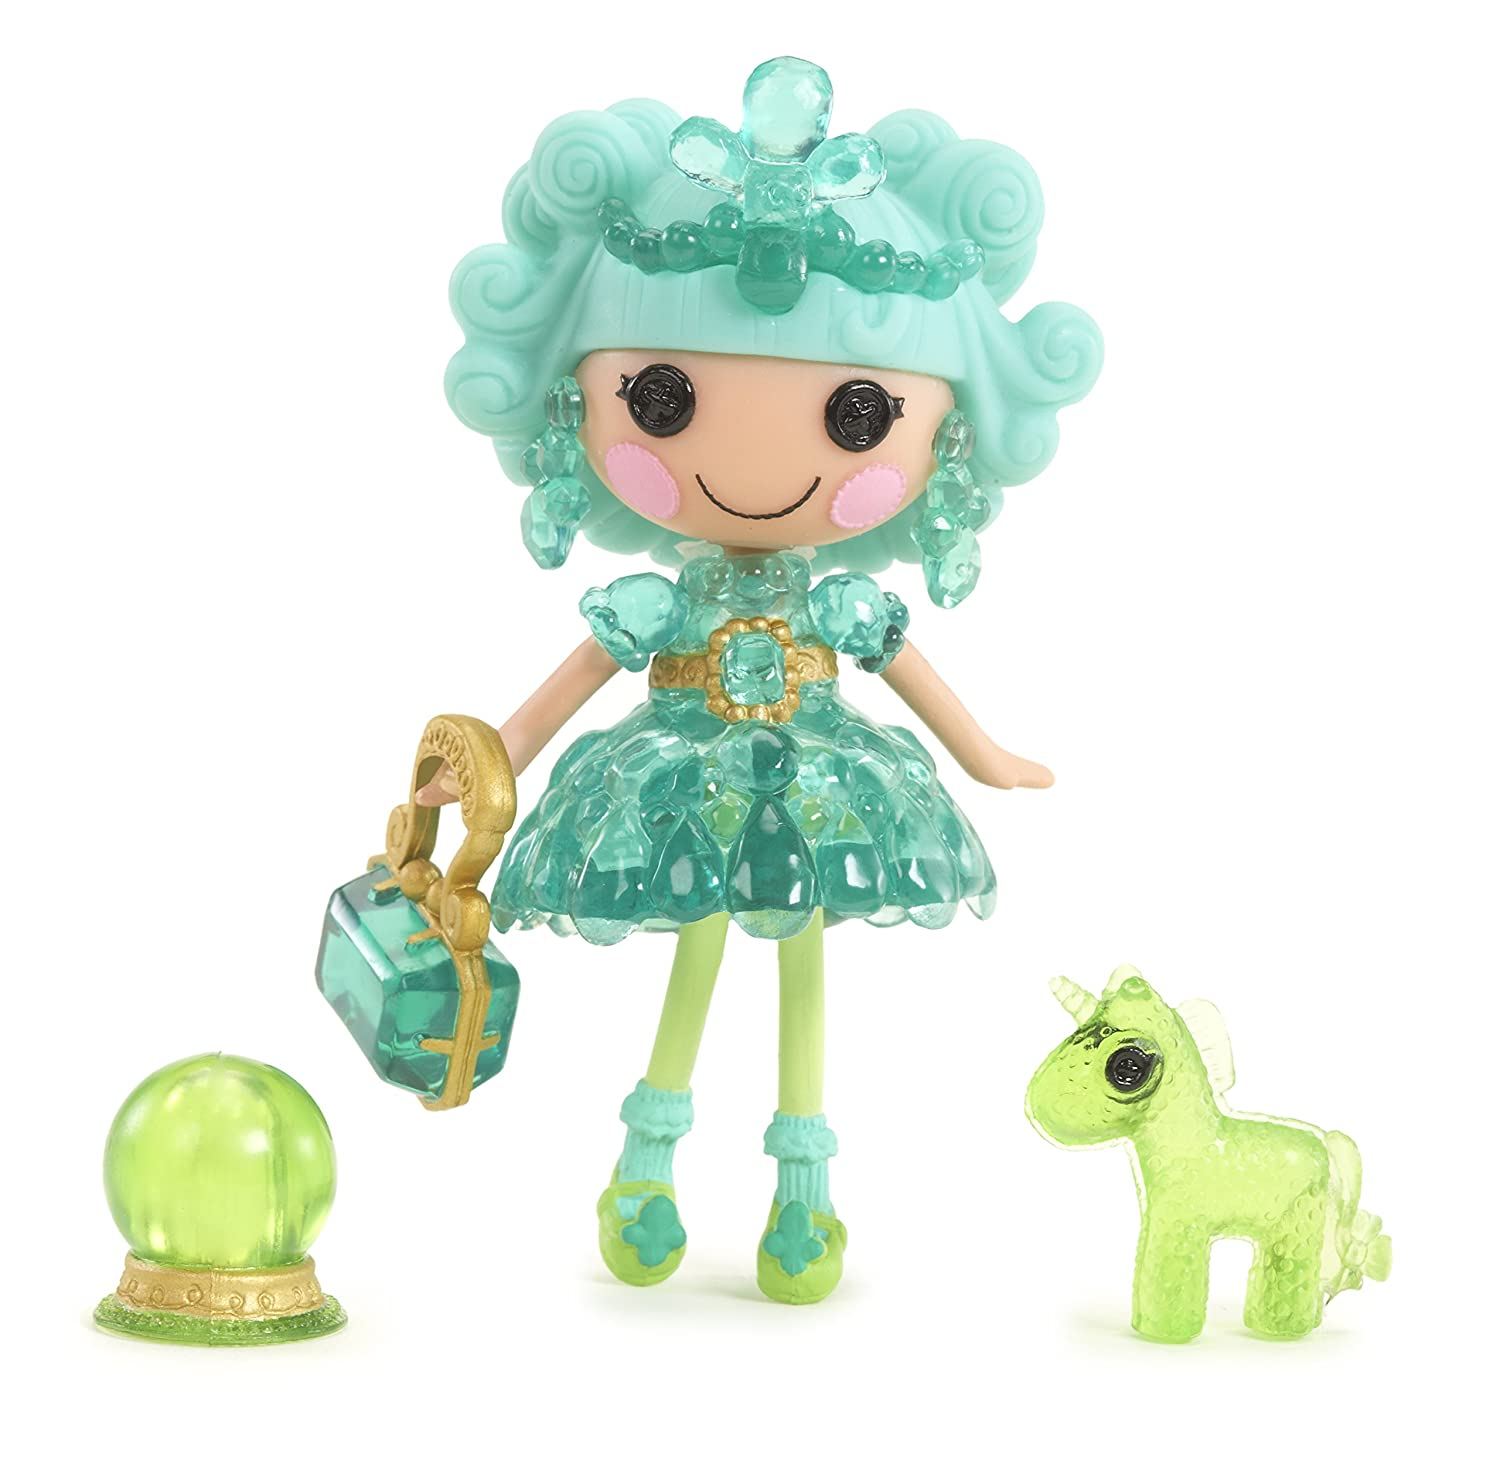 Mini Lalaloopsy Doll- Clarity Glitter Gazer